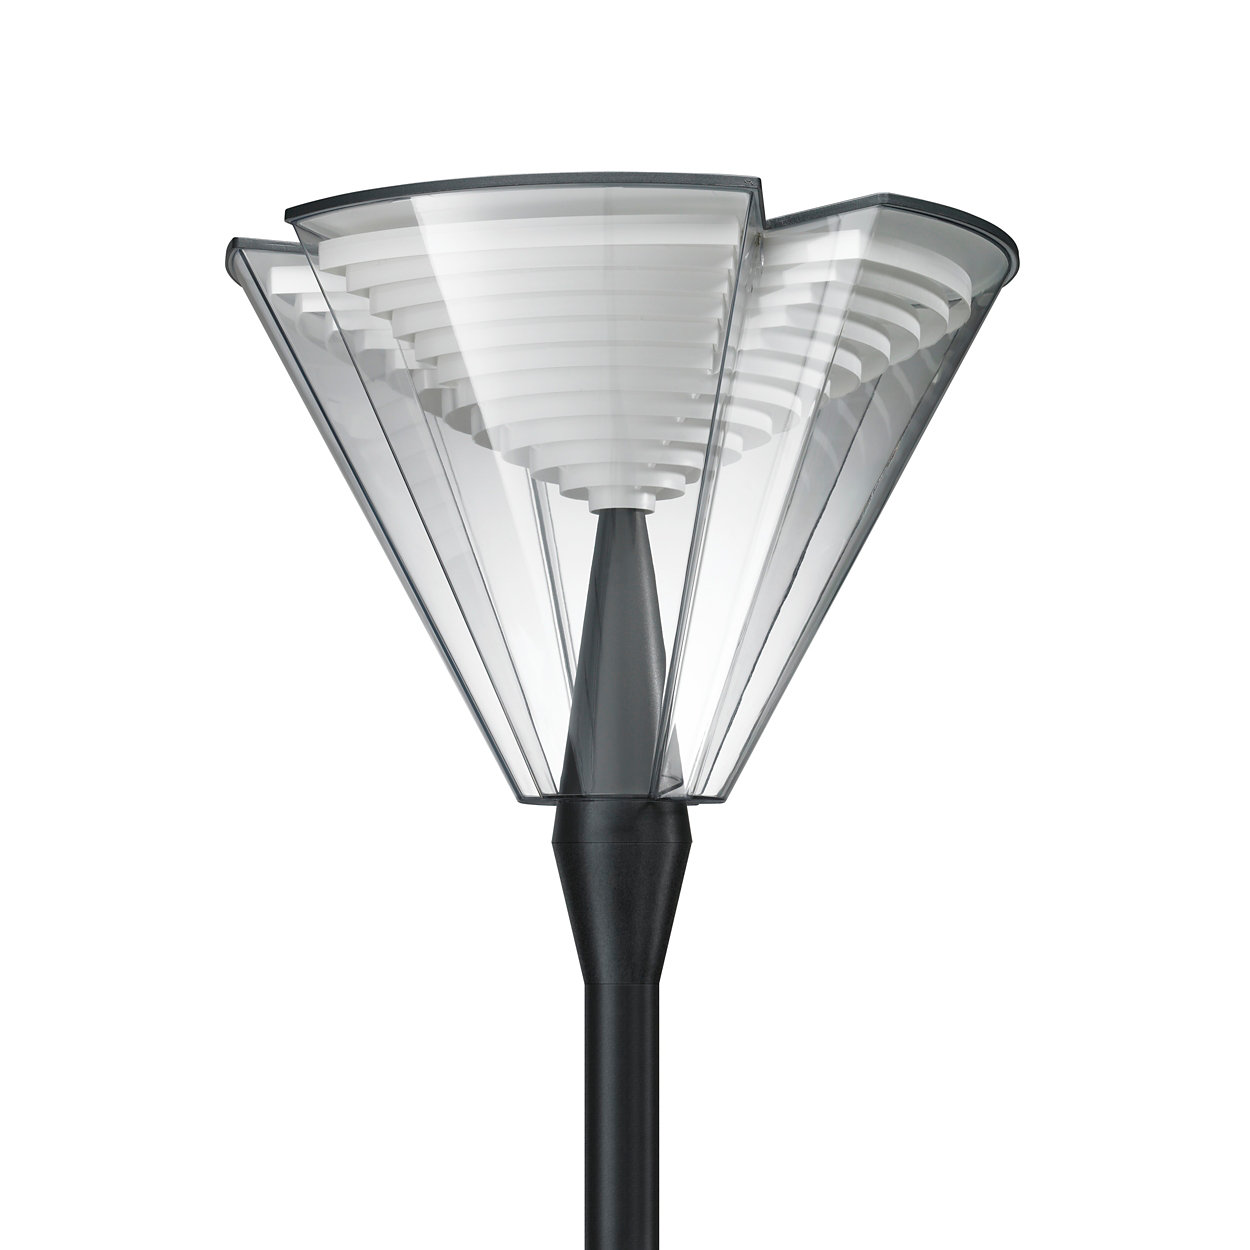 ParkView LED – a flexible luminaire for parks